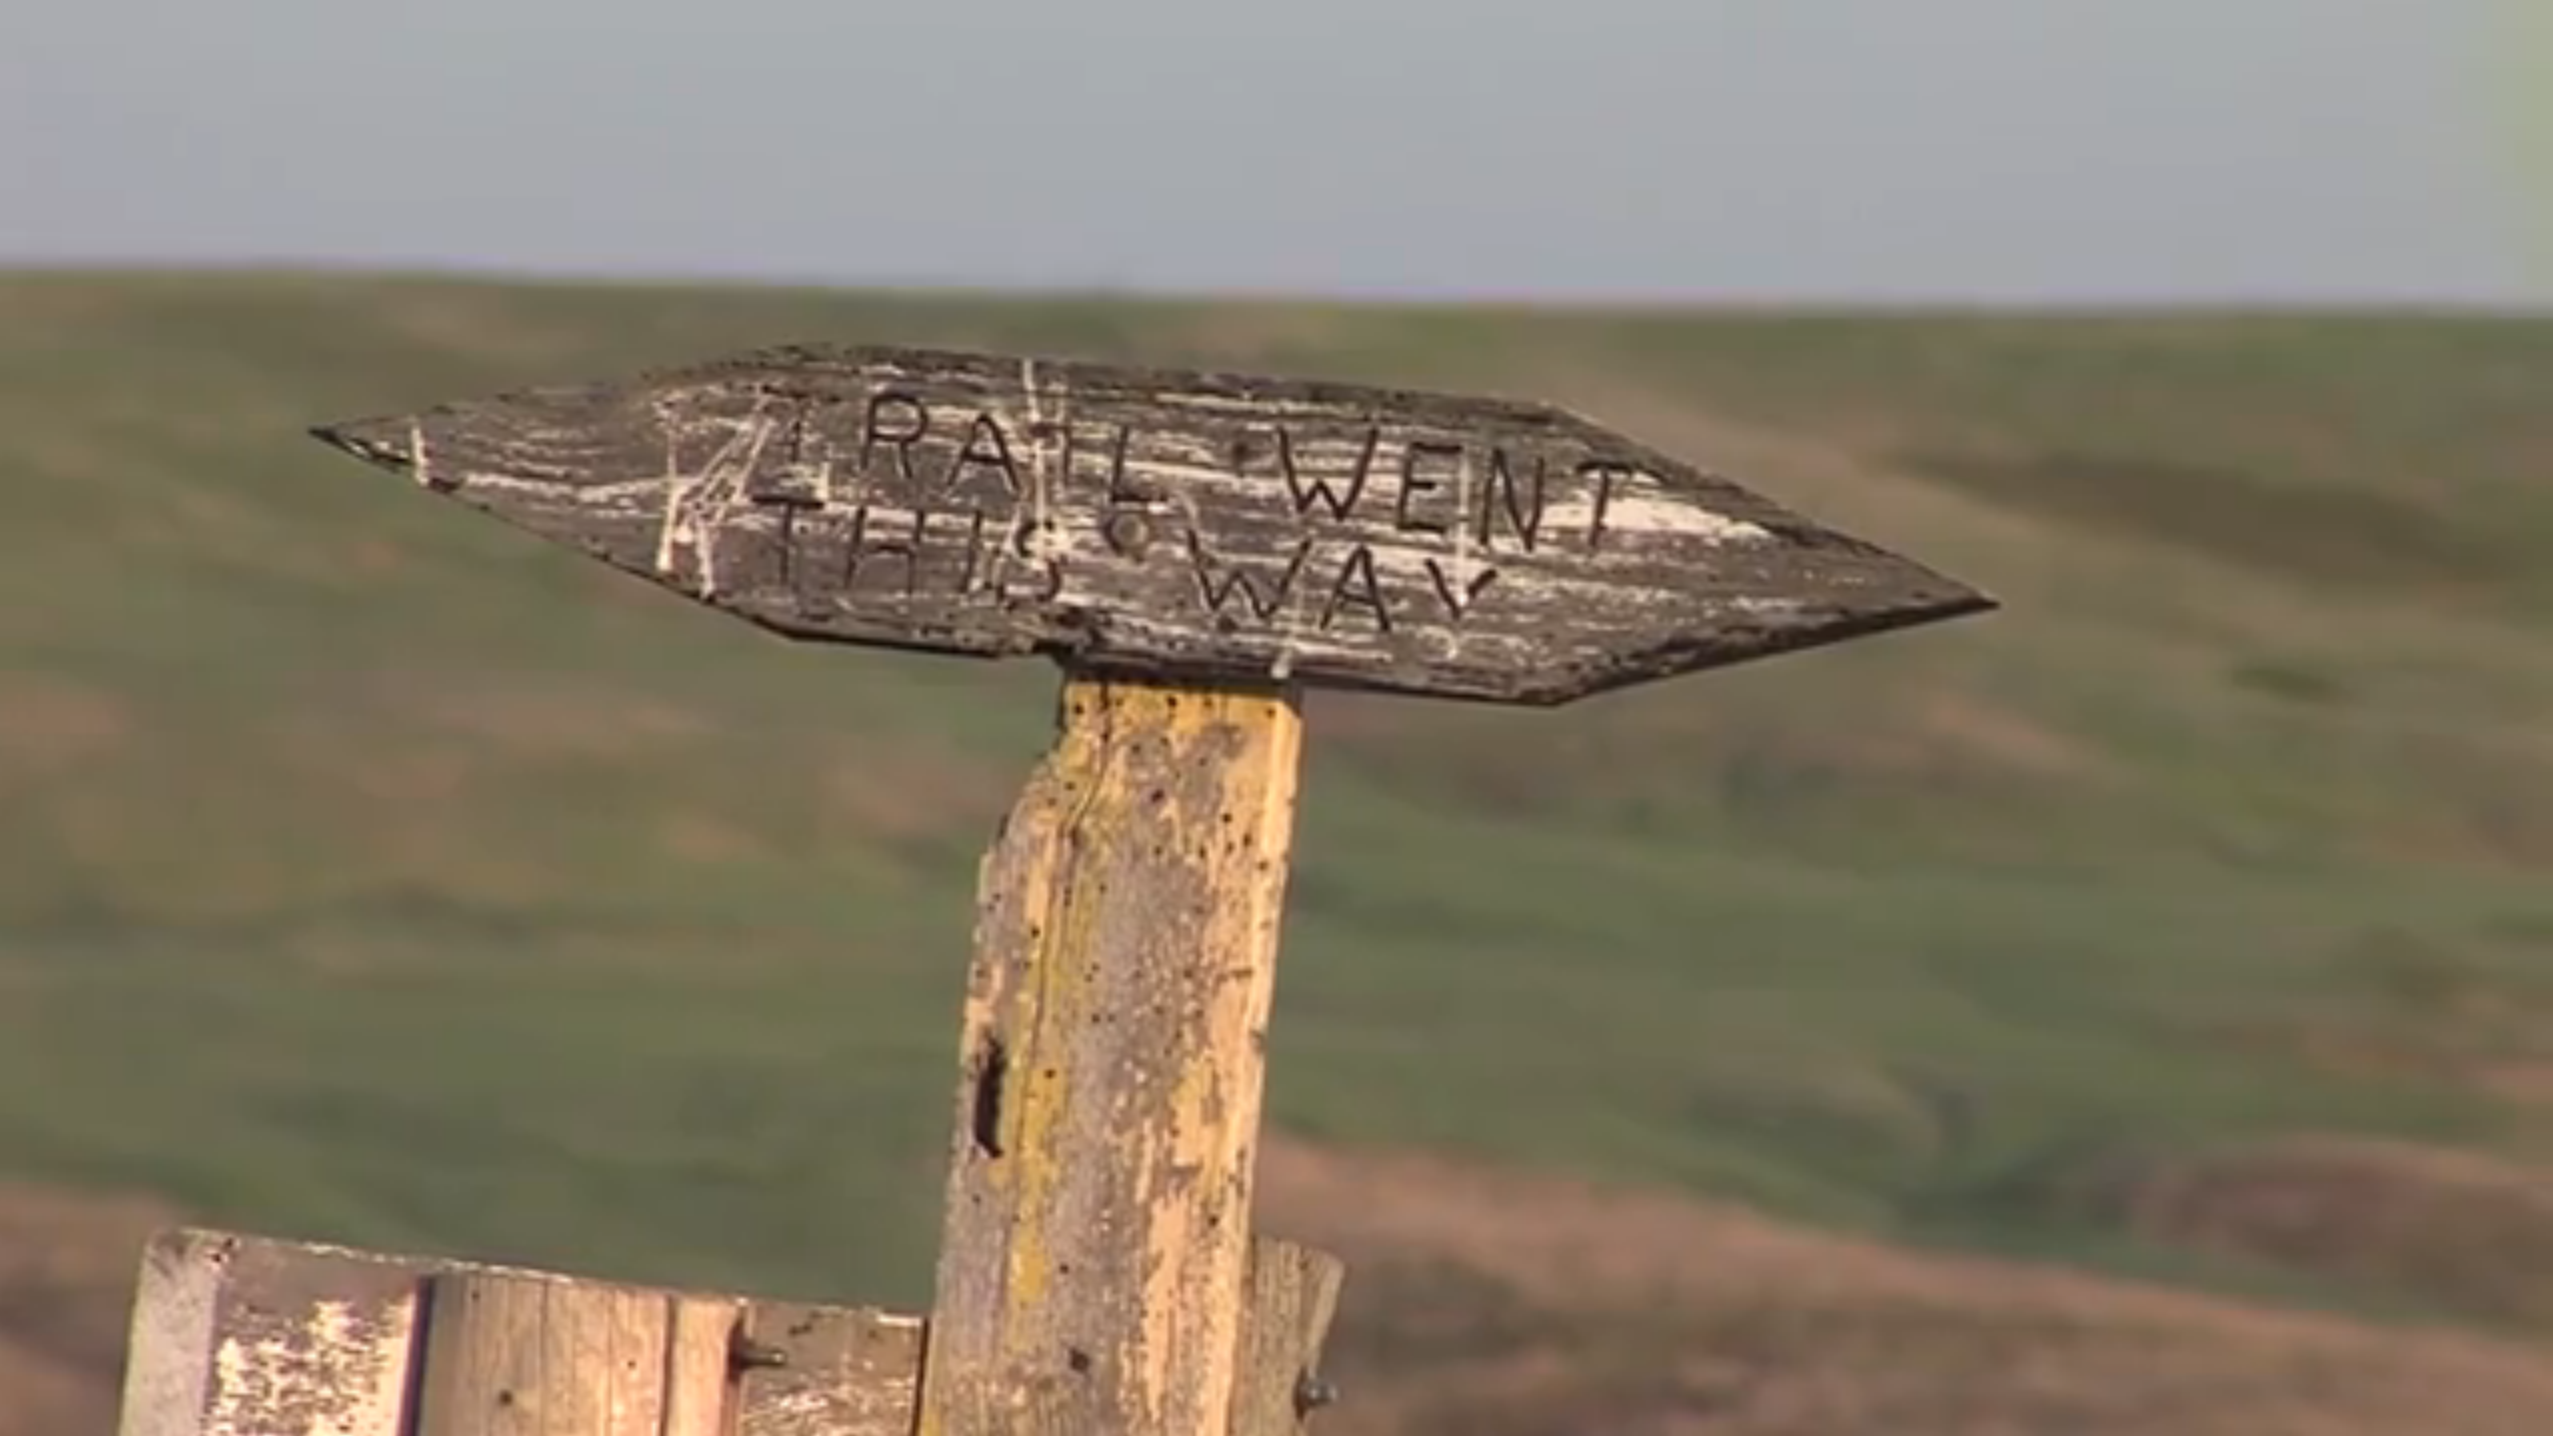 Carving of trail sign